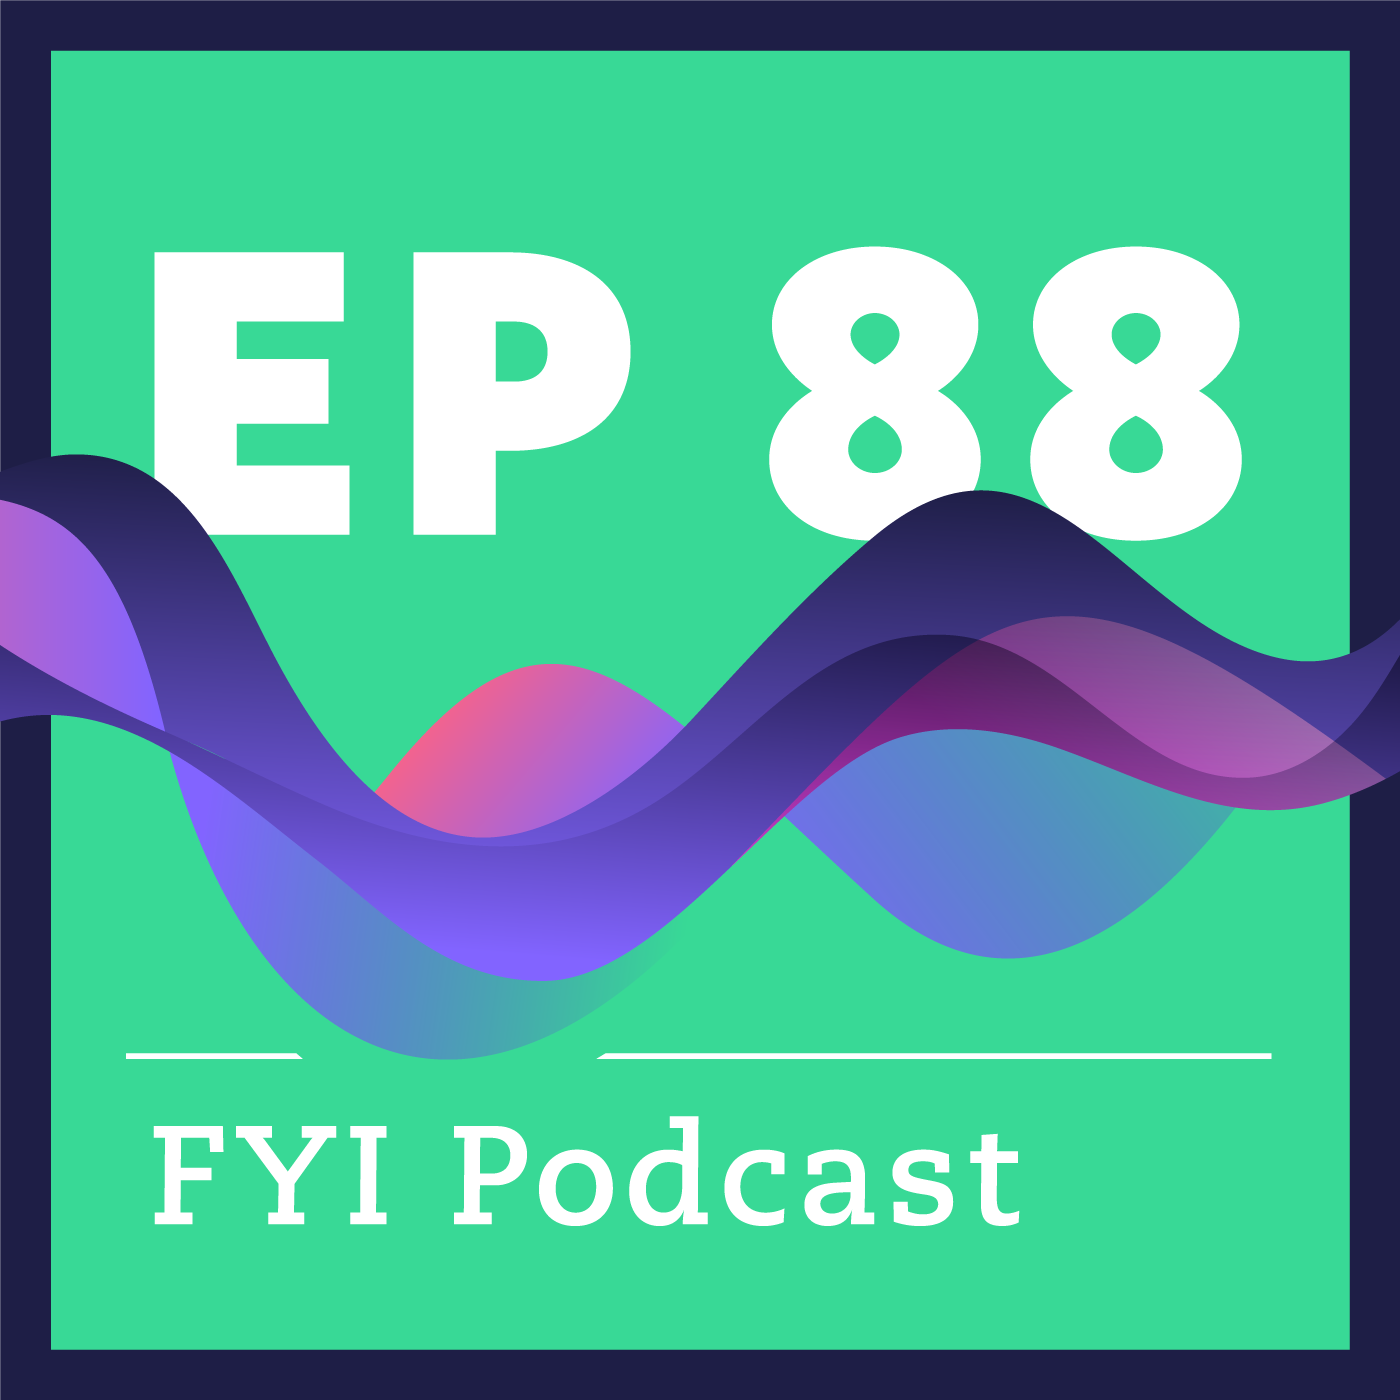 Best of 2020 — FYI Podcast Compilation